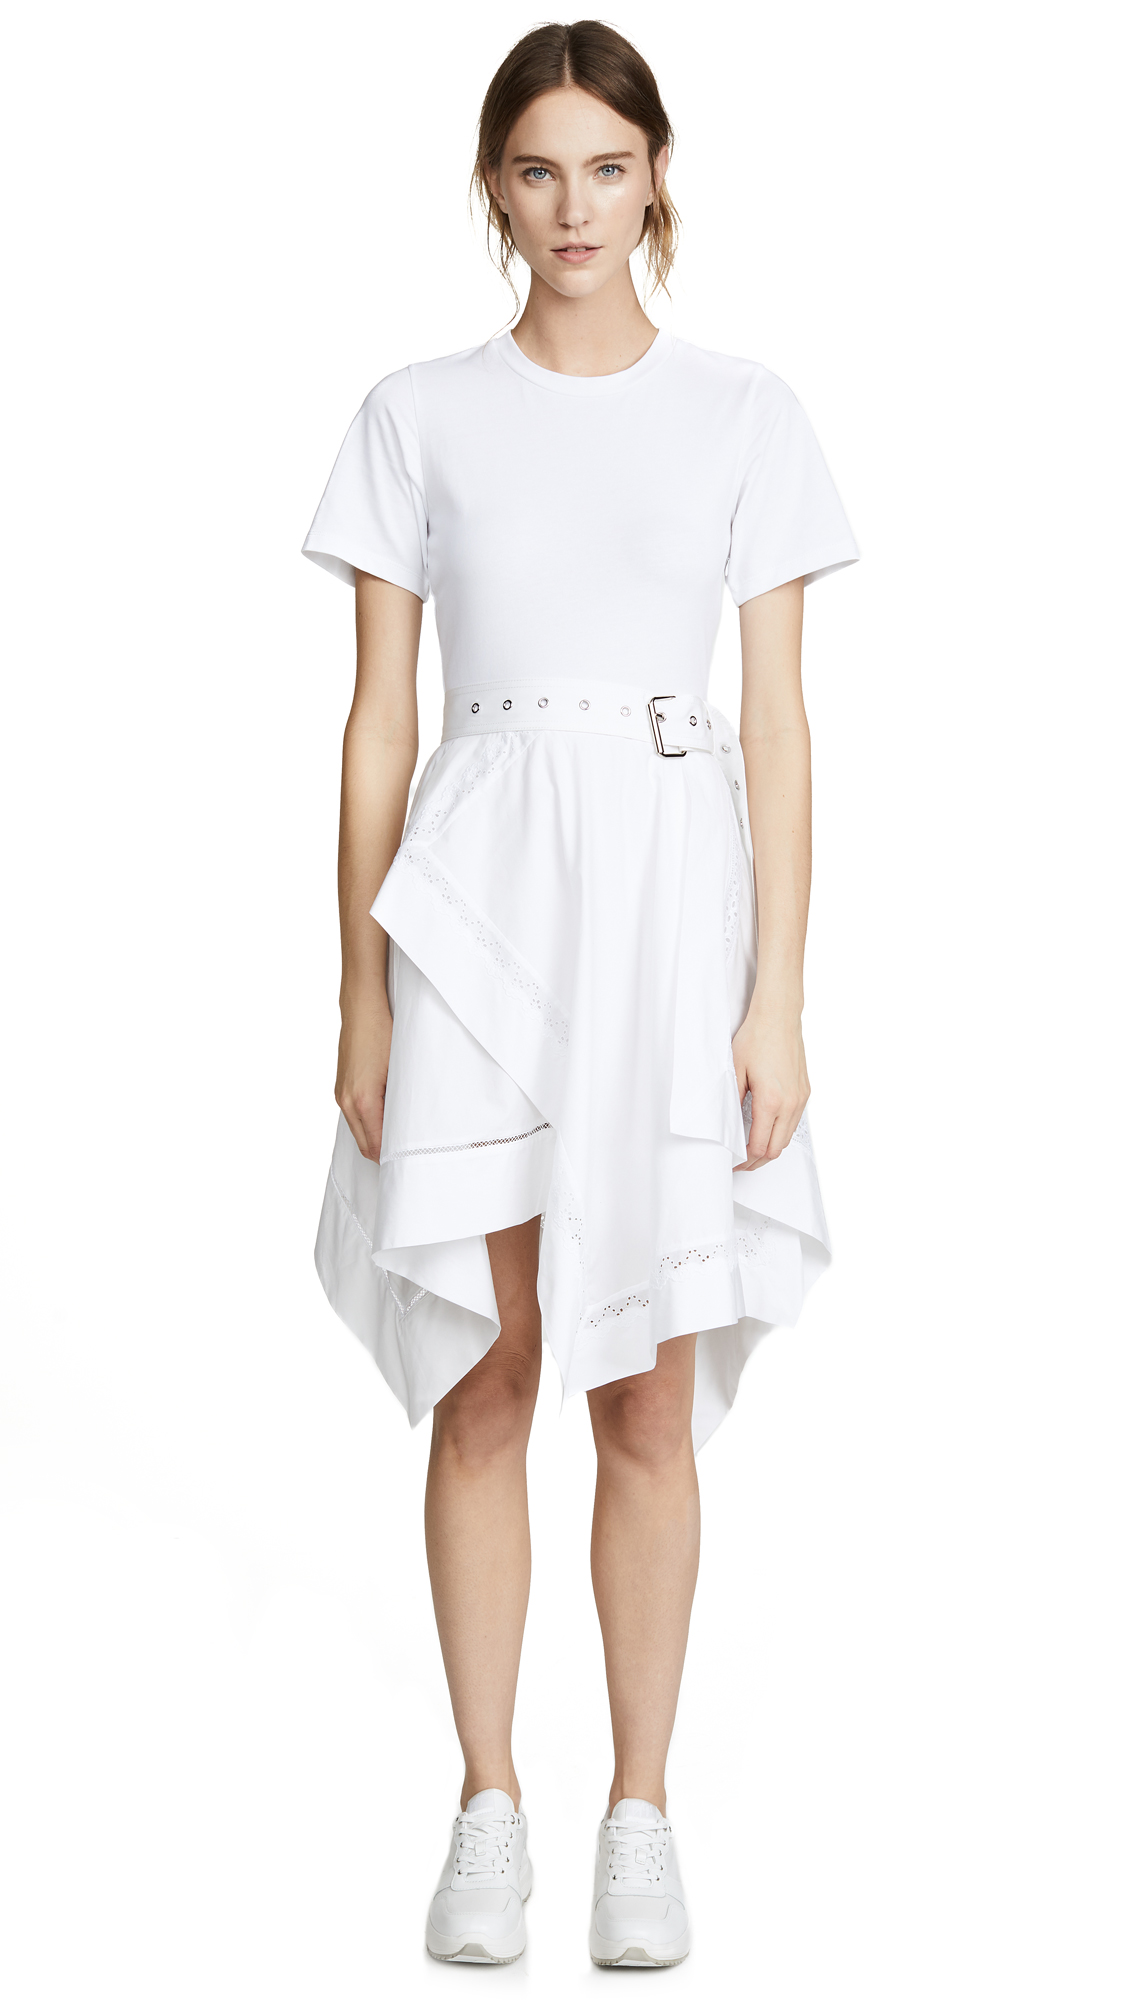 3.1 Phillip Lim Dress with Handkerchief Skirt - White